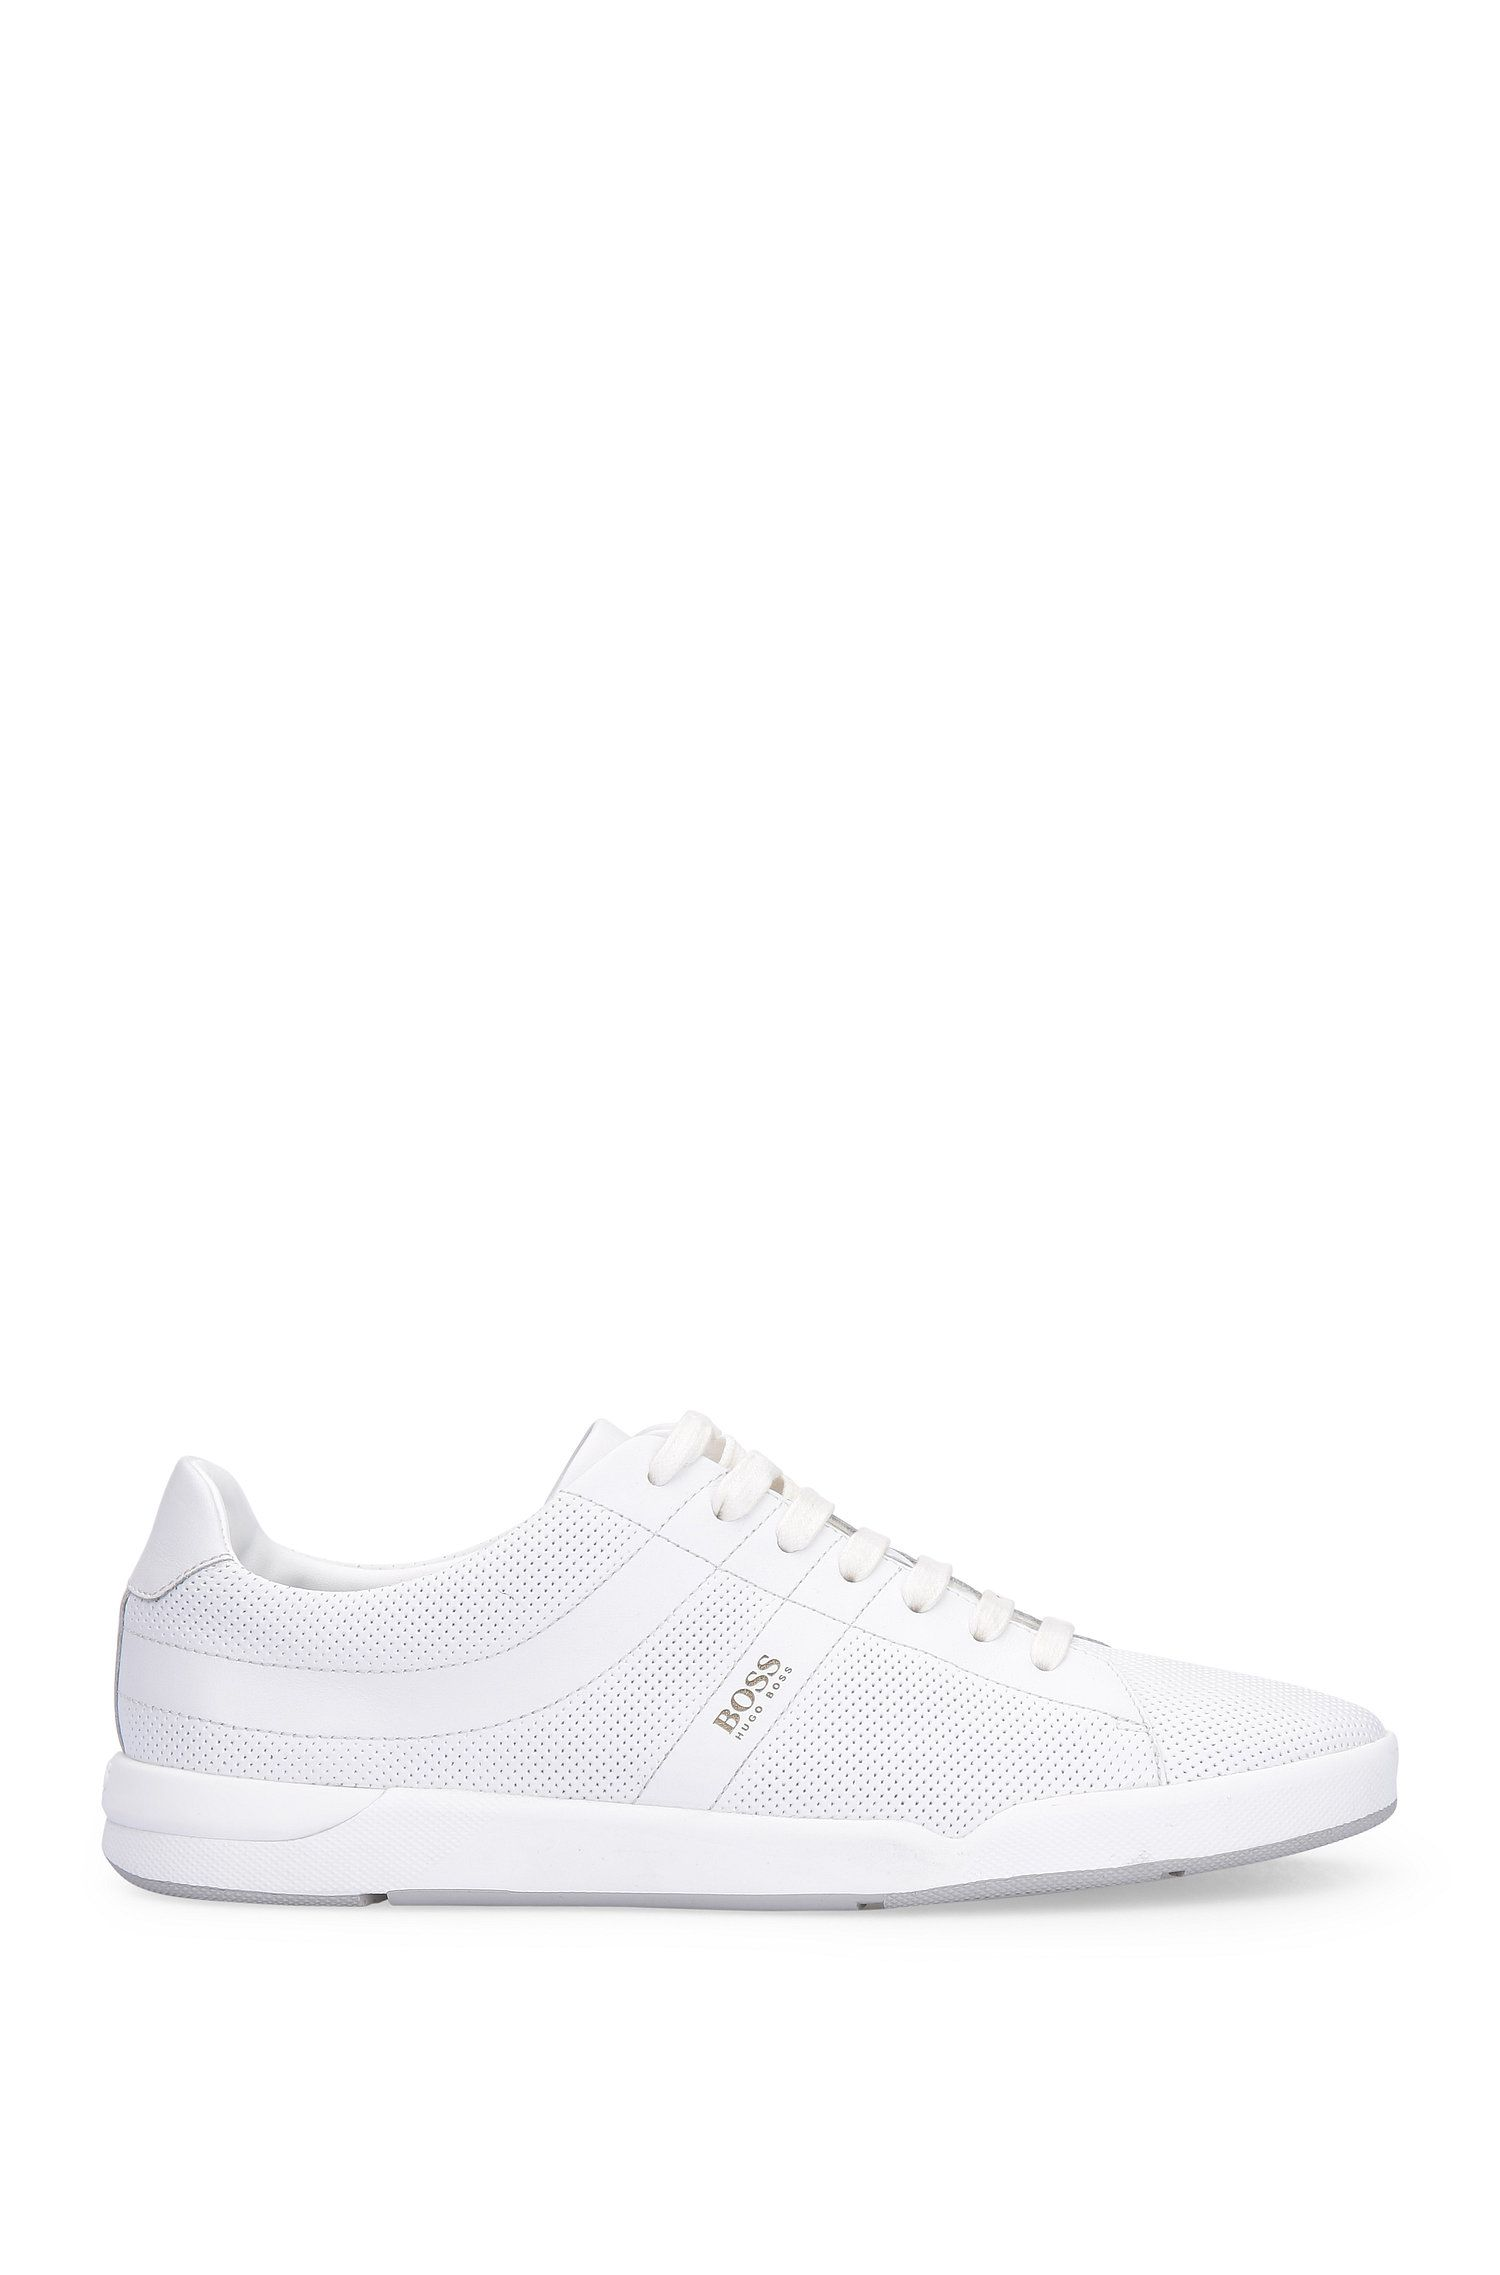 Leather trainers with perforated pattern: 'Stillnes_Tenn_ltpf'